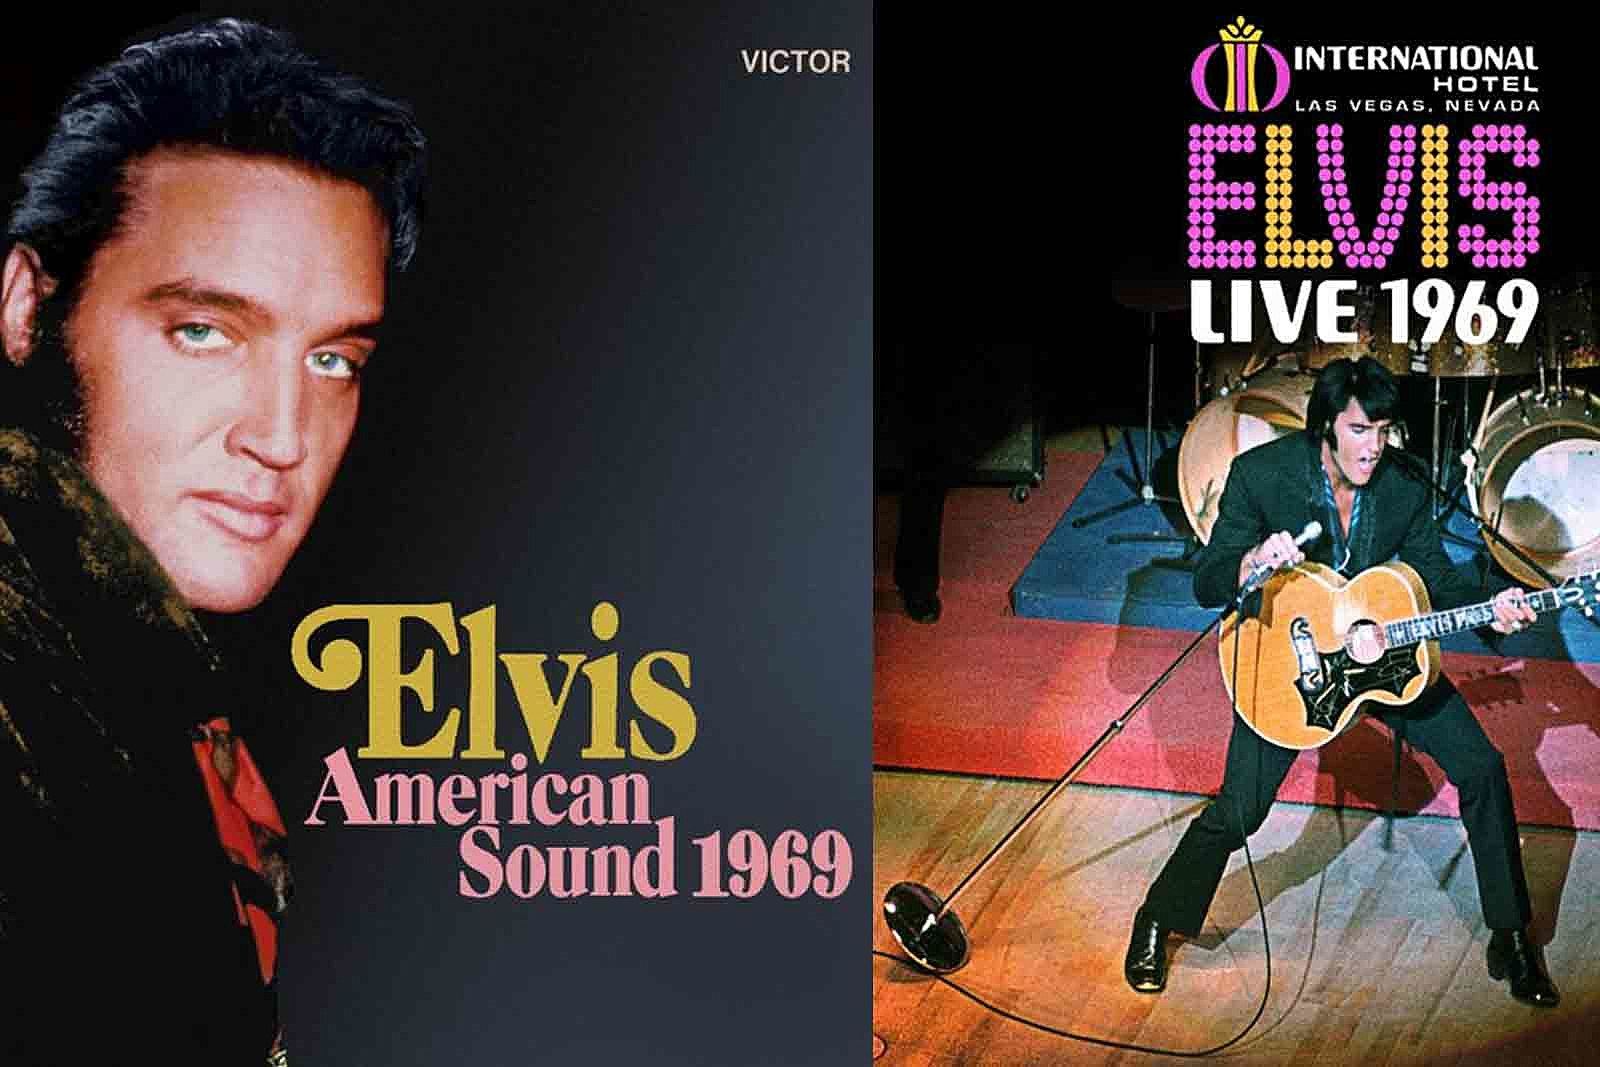 25 Elvis Presley Songs From the '70s That Don't Suck